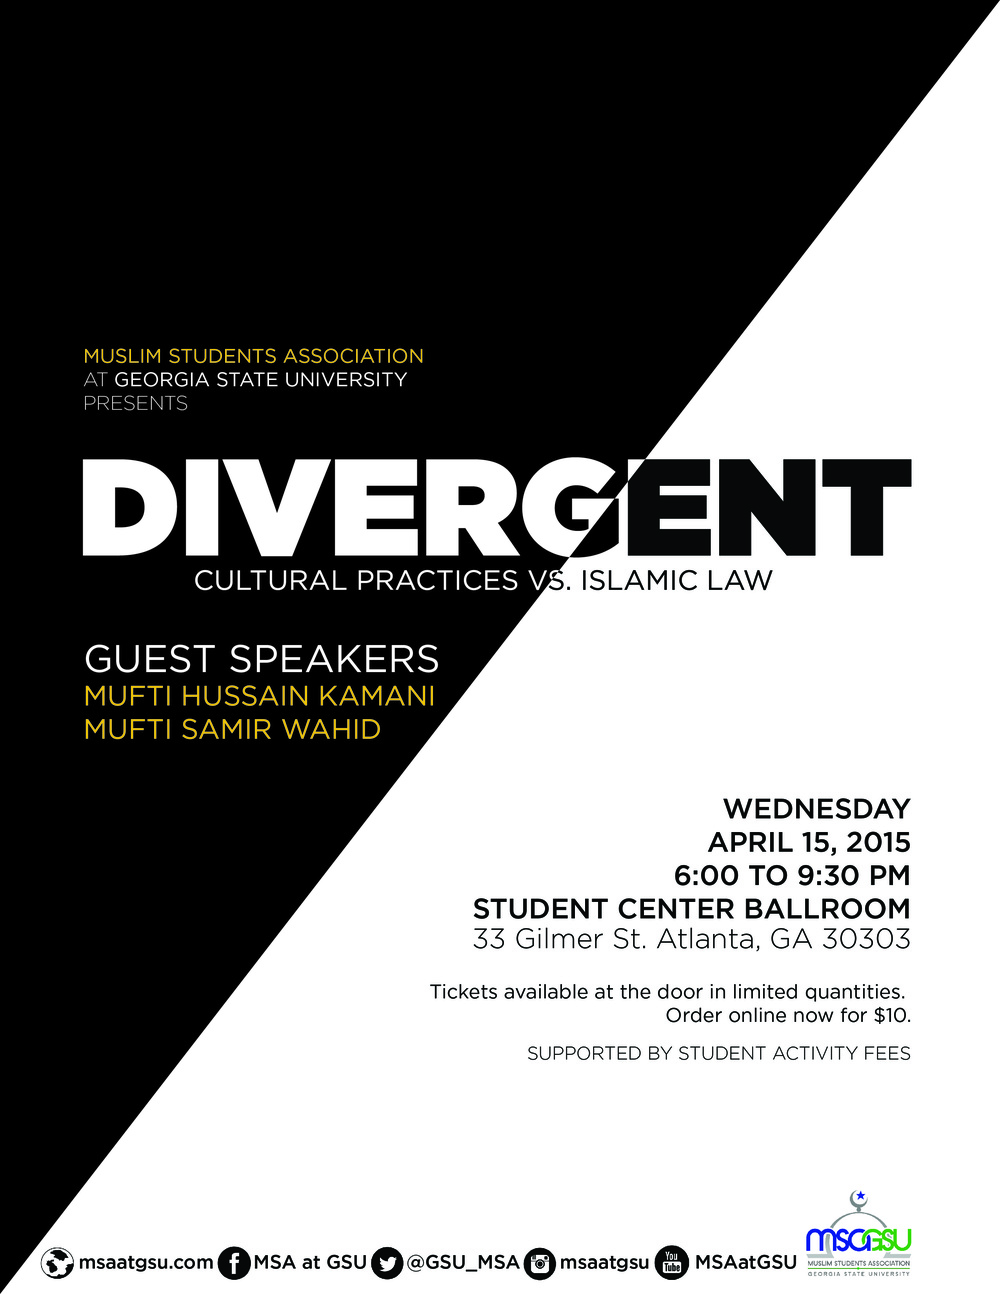 Divergent: Cultural Practices vs Islamic Law